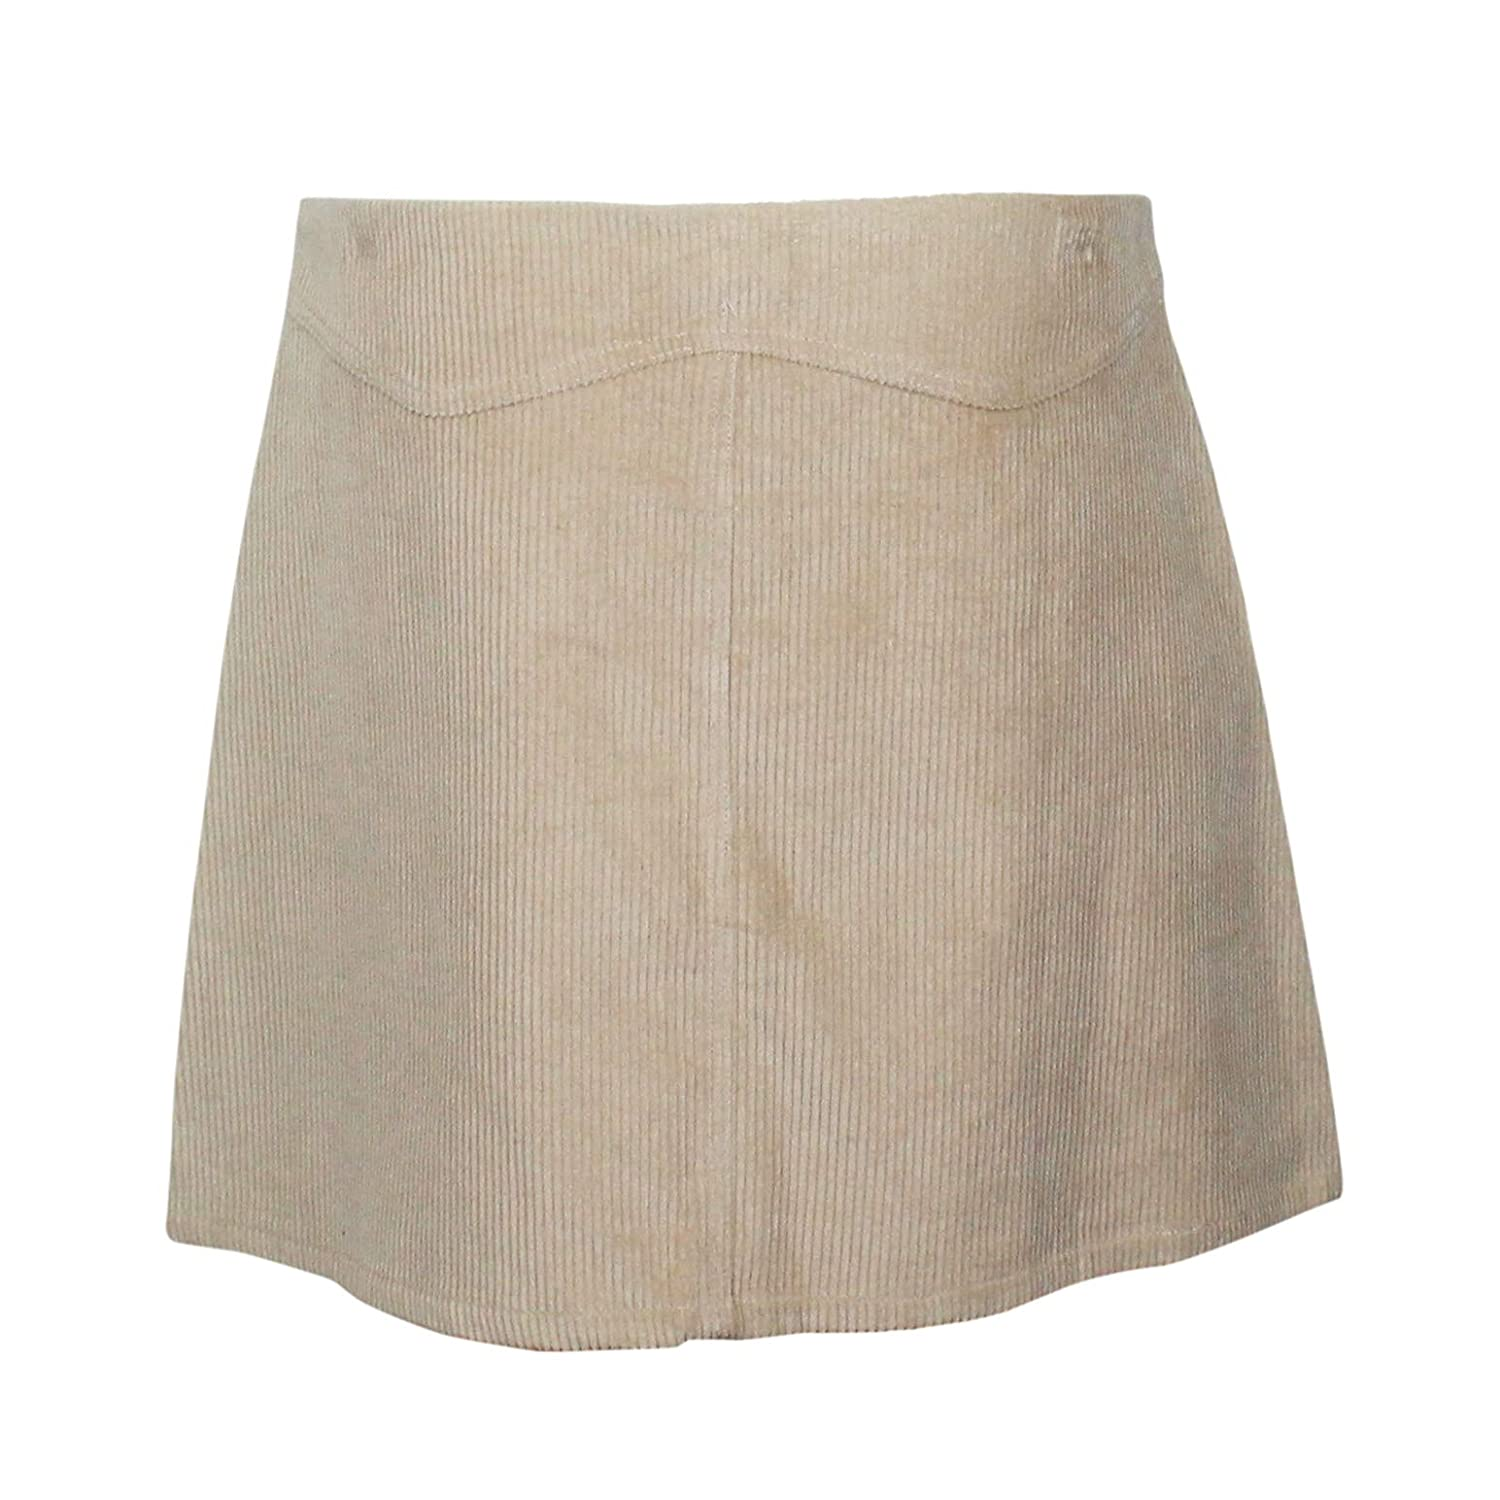 d12c19de6 She + Sky Womens Button Front Corduroy Mini Skirt Light Taupe Large at Amazon  Women's Clothing store: